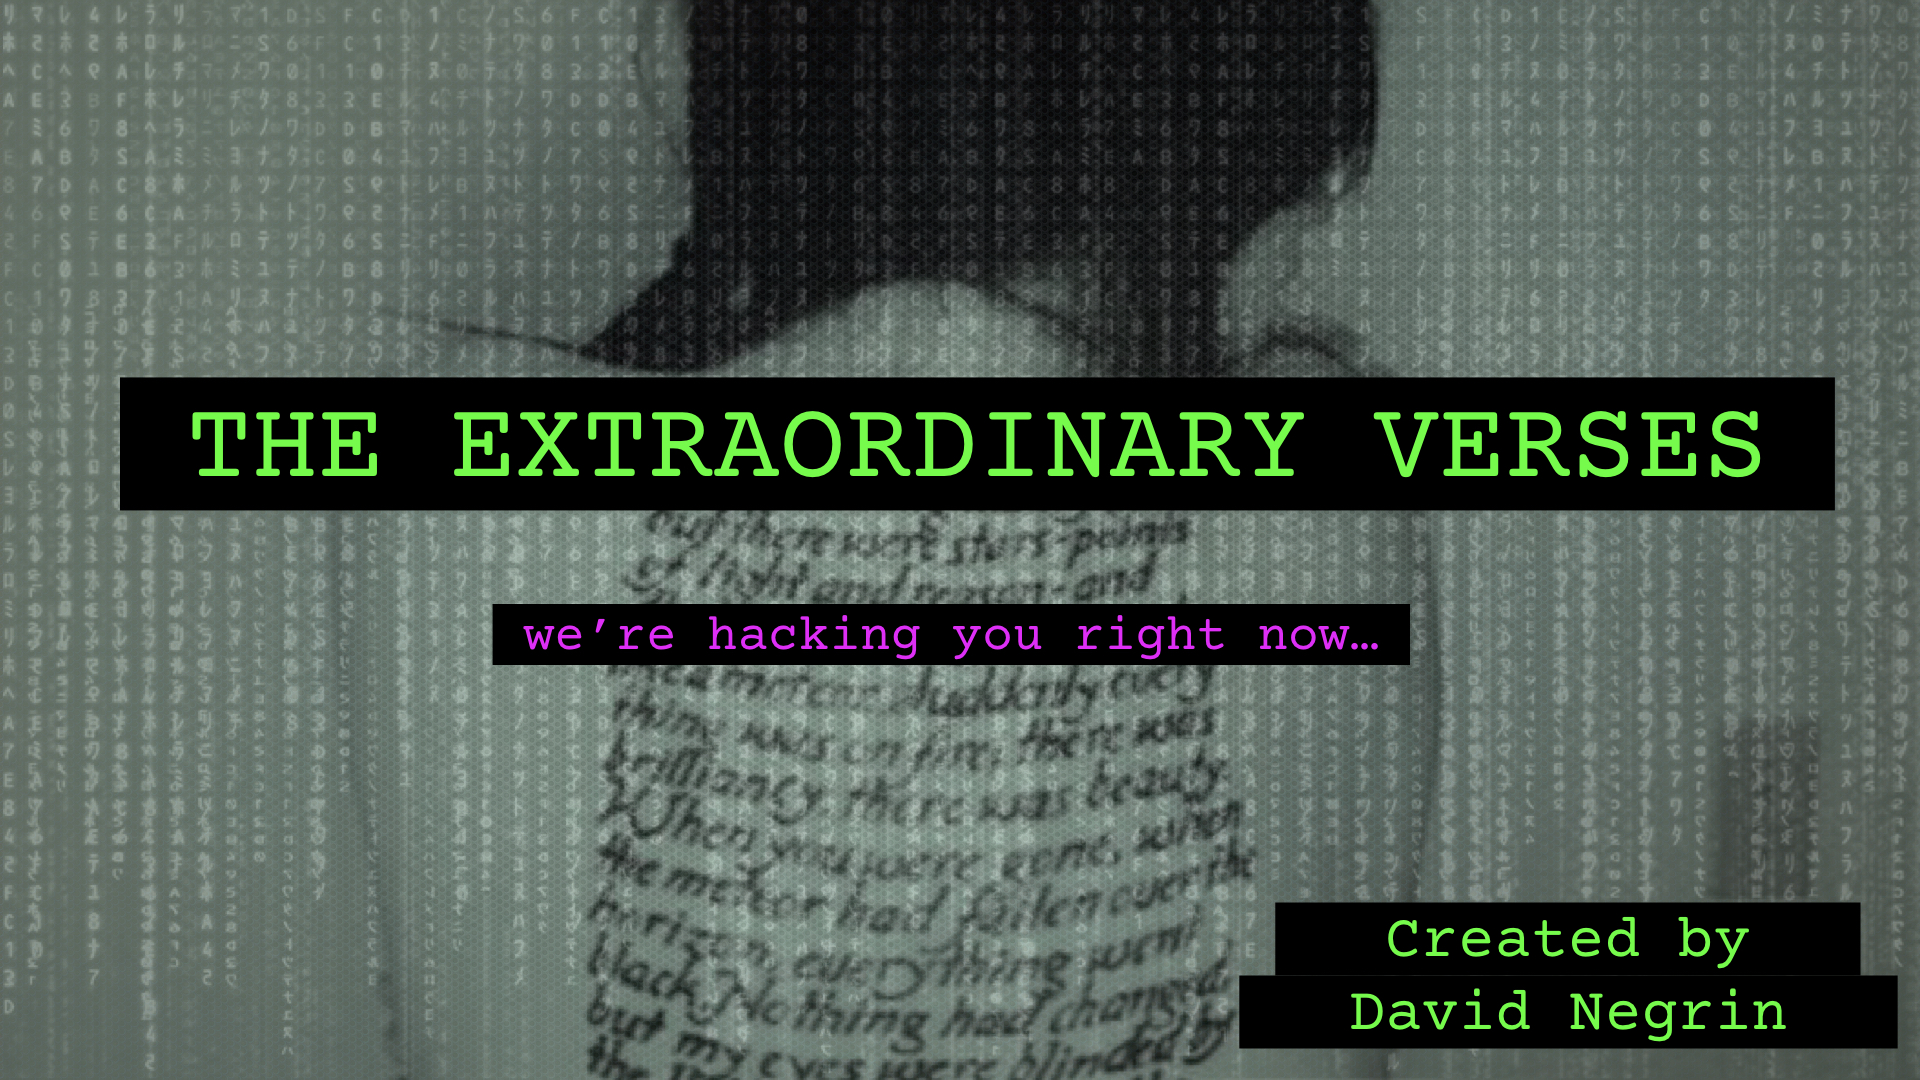 The Extraordinary Verses - A Transmedia franchise proposal in active development. A Cyberpunk epic whose mystery is solved in a single story world across multiple media: film, television, graphic novel, podcast, web-based (ARG).